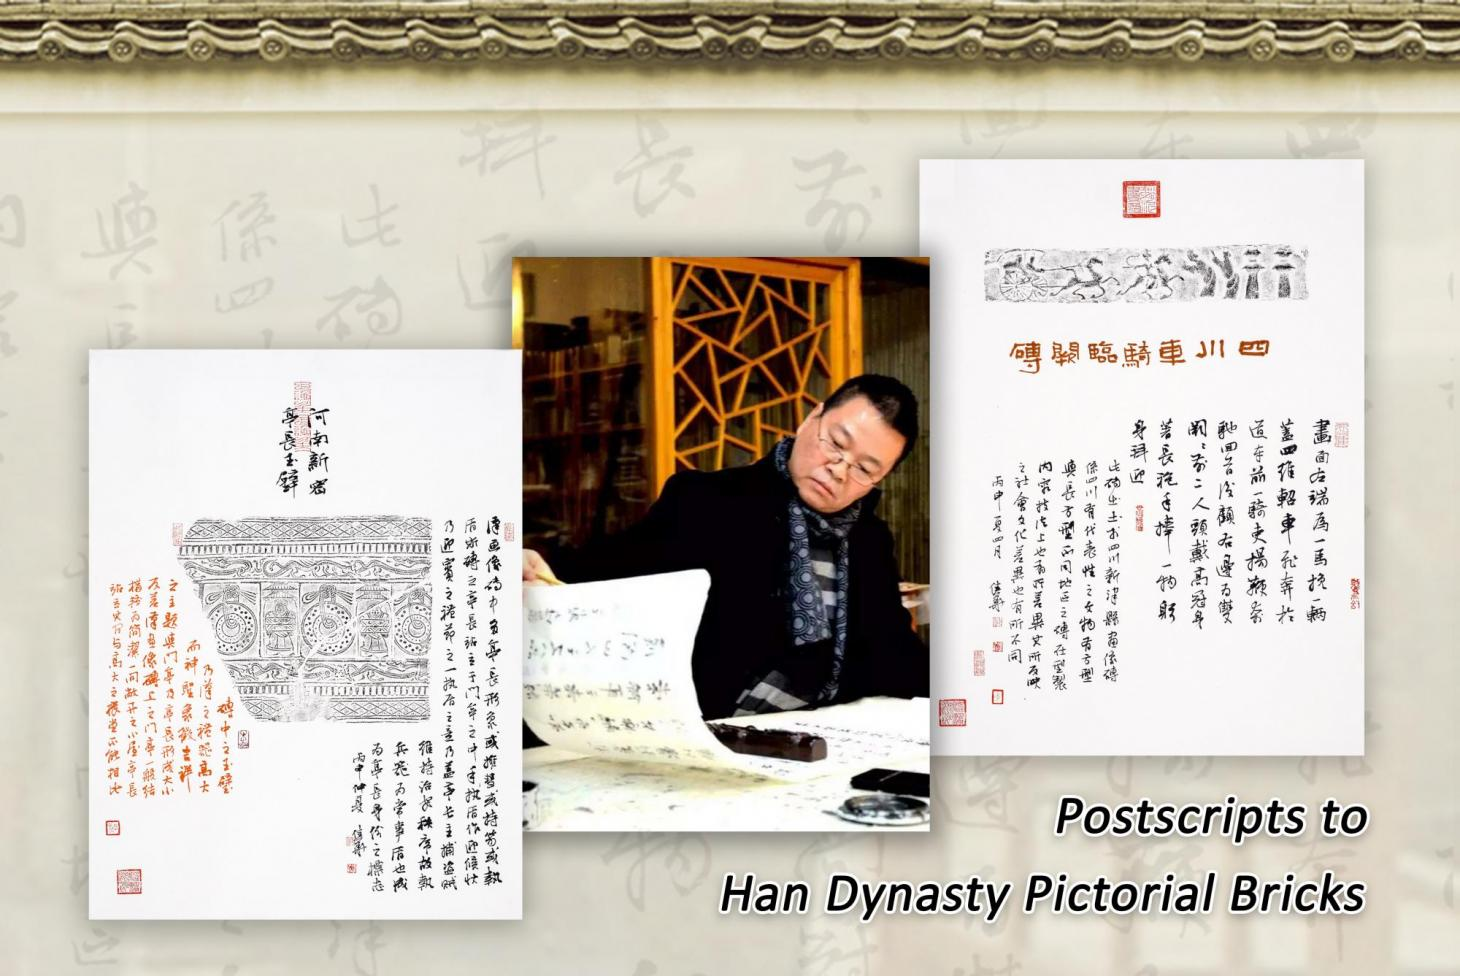 Postscripts to Han Dynasty Pictorial Bricks